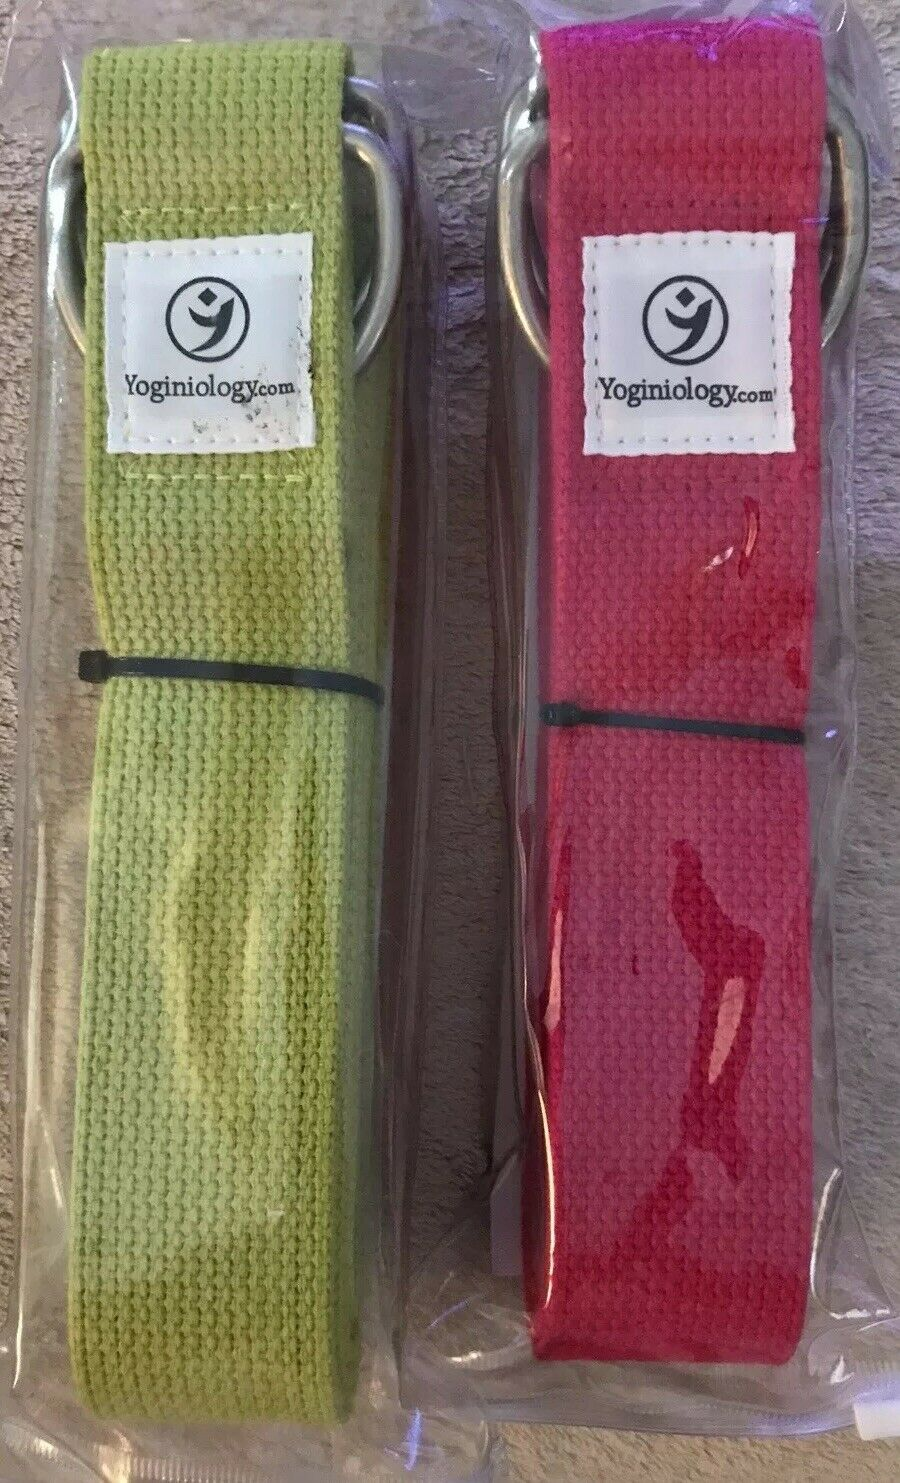 YOGA STRAPS by Yoginiology, Set of Two Straps 1 Pink 1 Green, Exercise, Yoga…